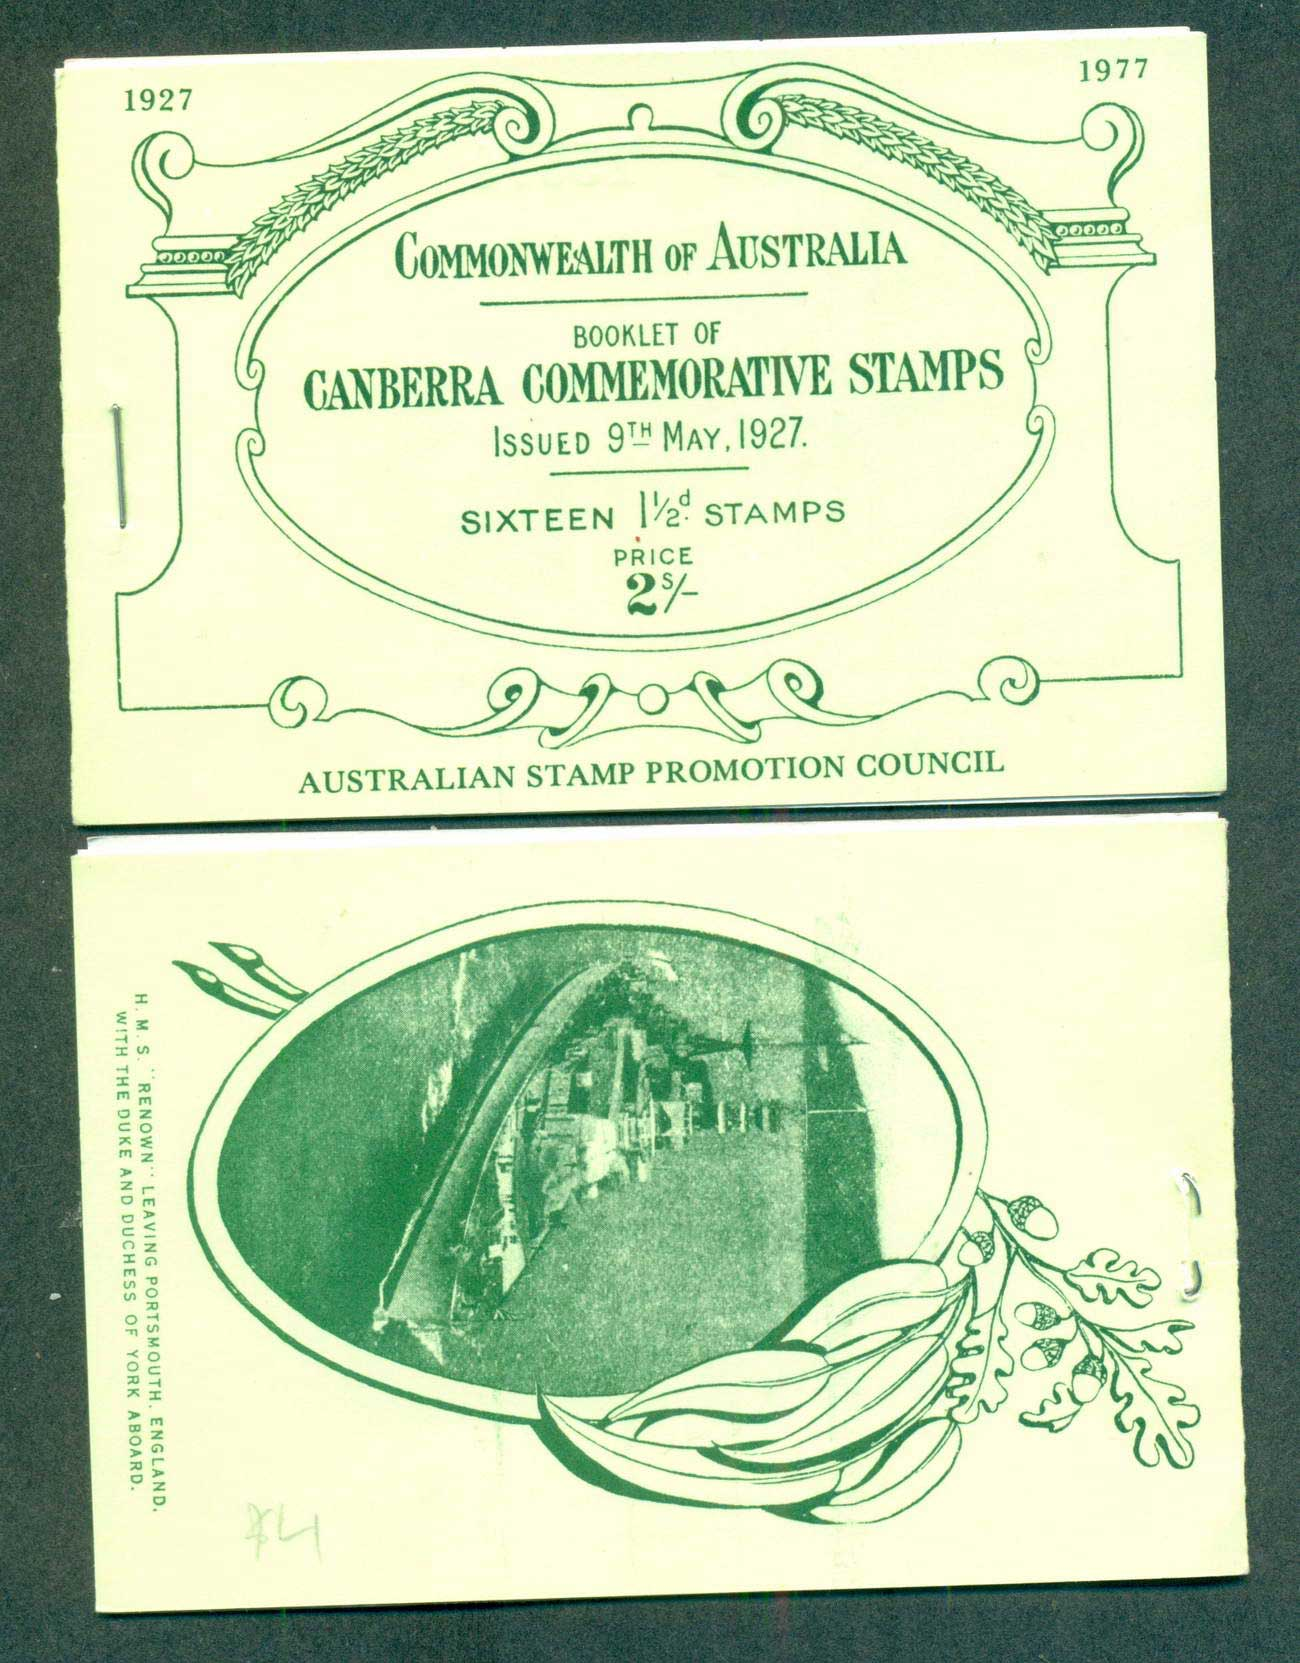 Australia 1977 Parliament House Commemorative Reproduction Booklet lot62076